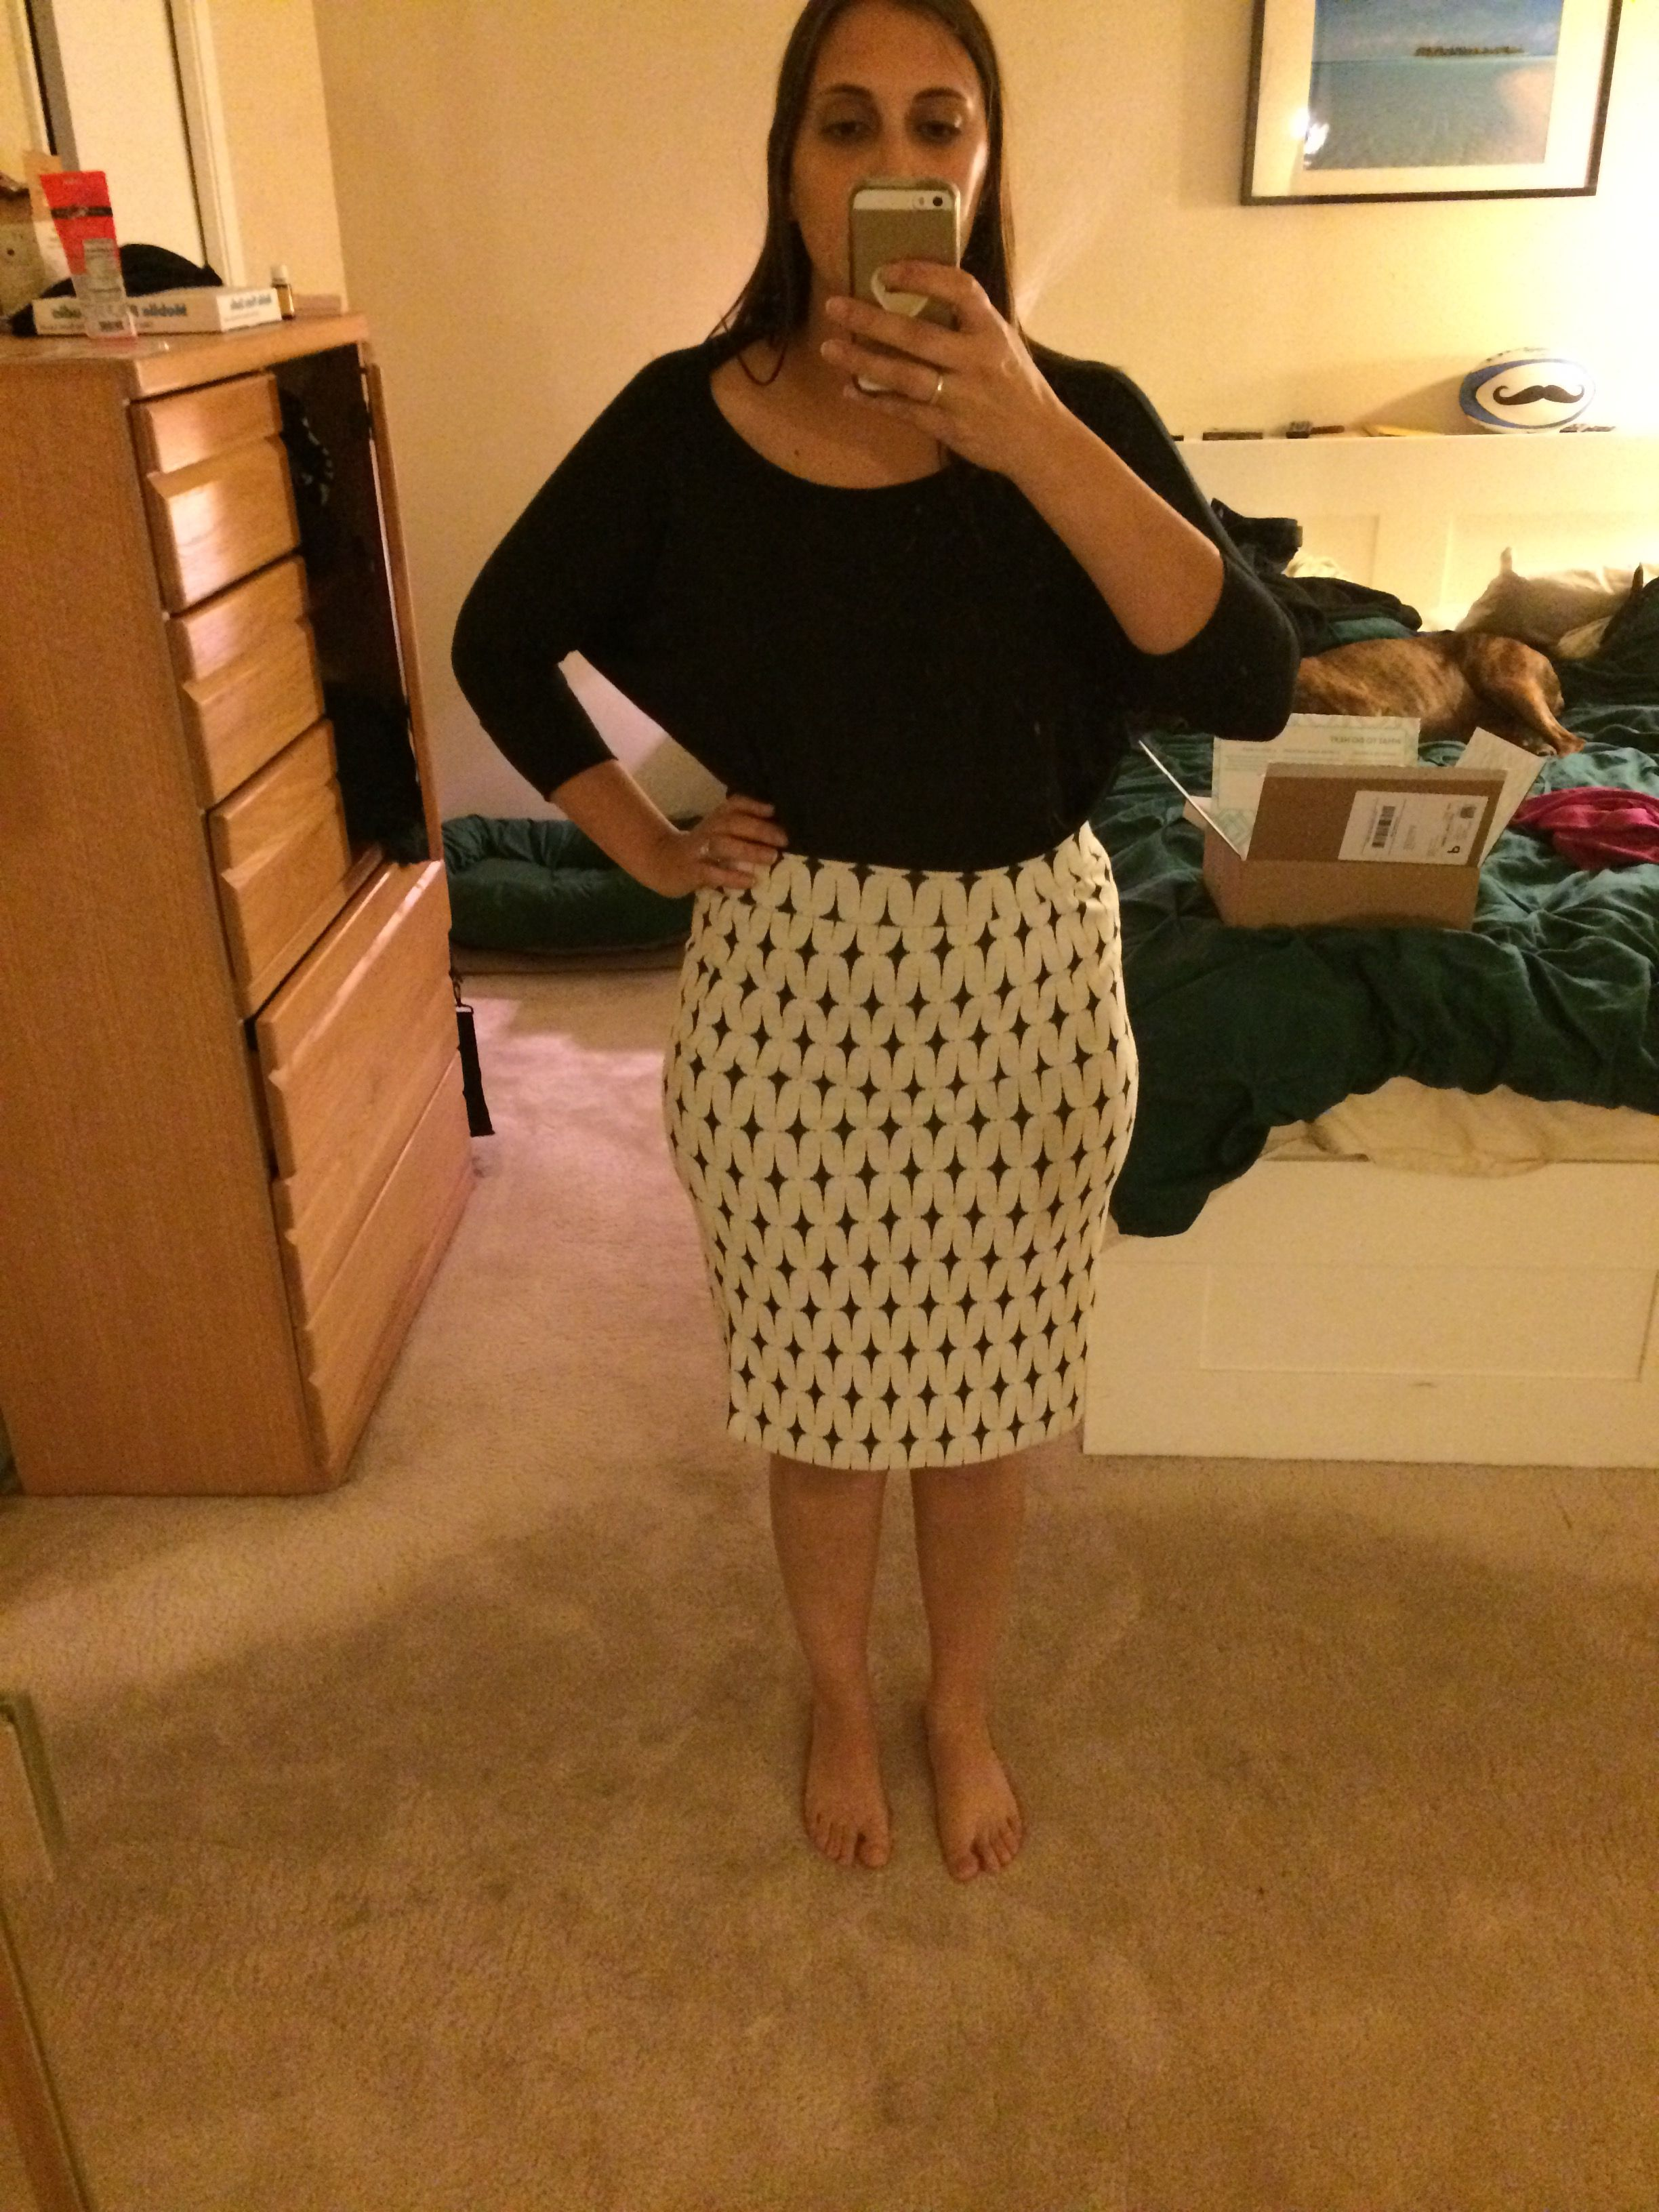 238df2ad22 Stitch Fix #18: Didn't keep. I liked the pattern and material when I took  it from the box, but the fit just made me feel frumpy and lumpy.